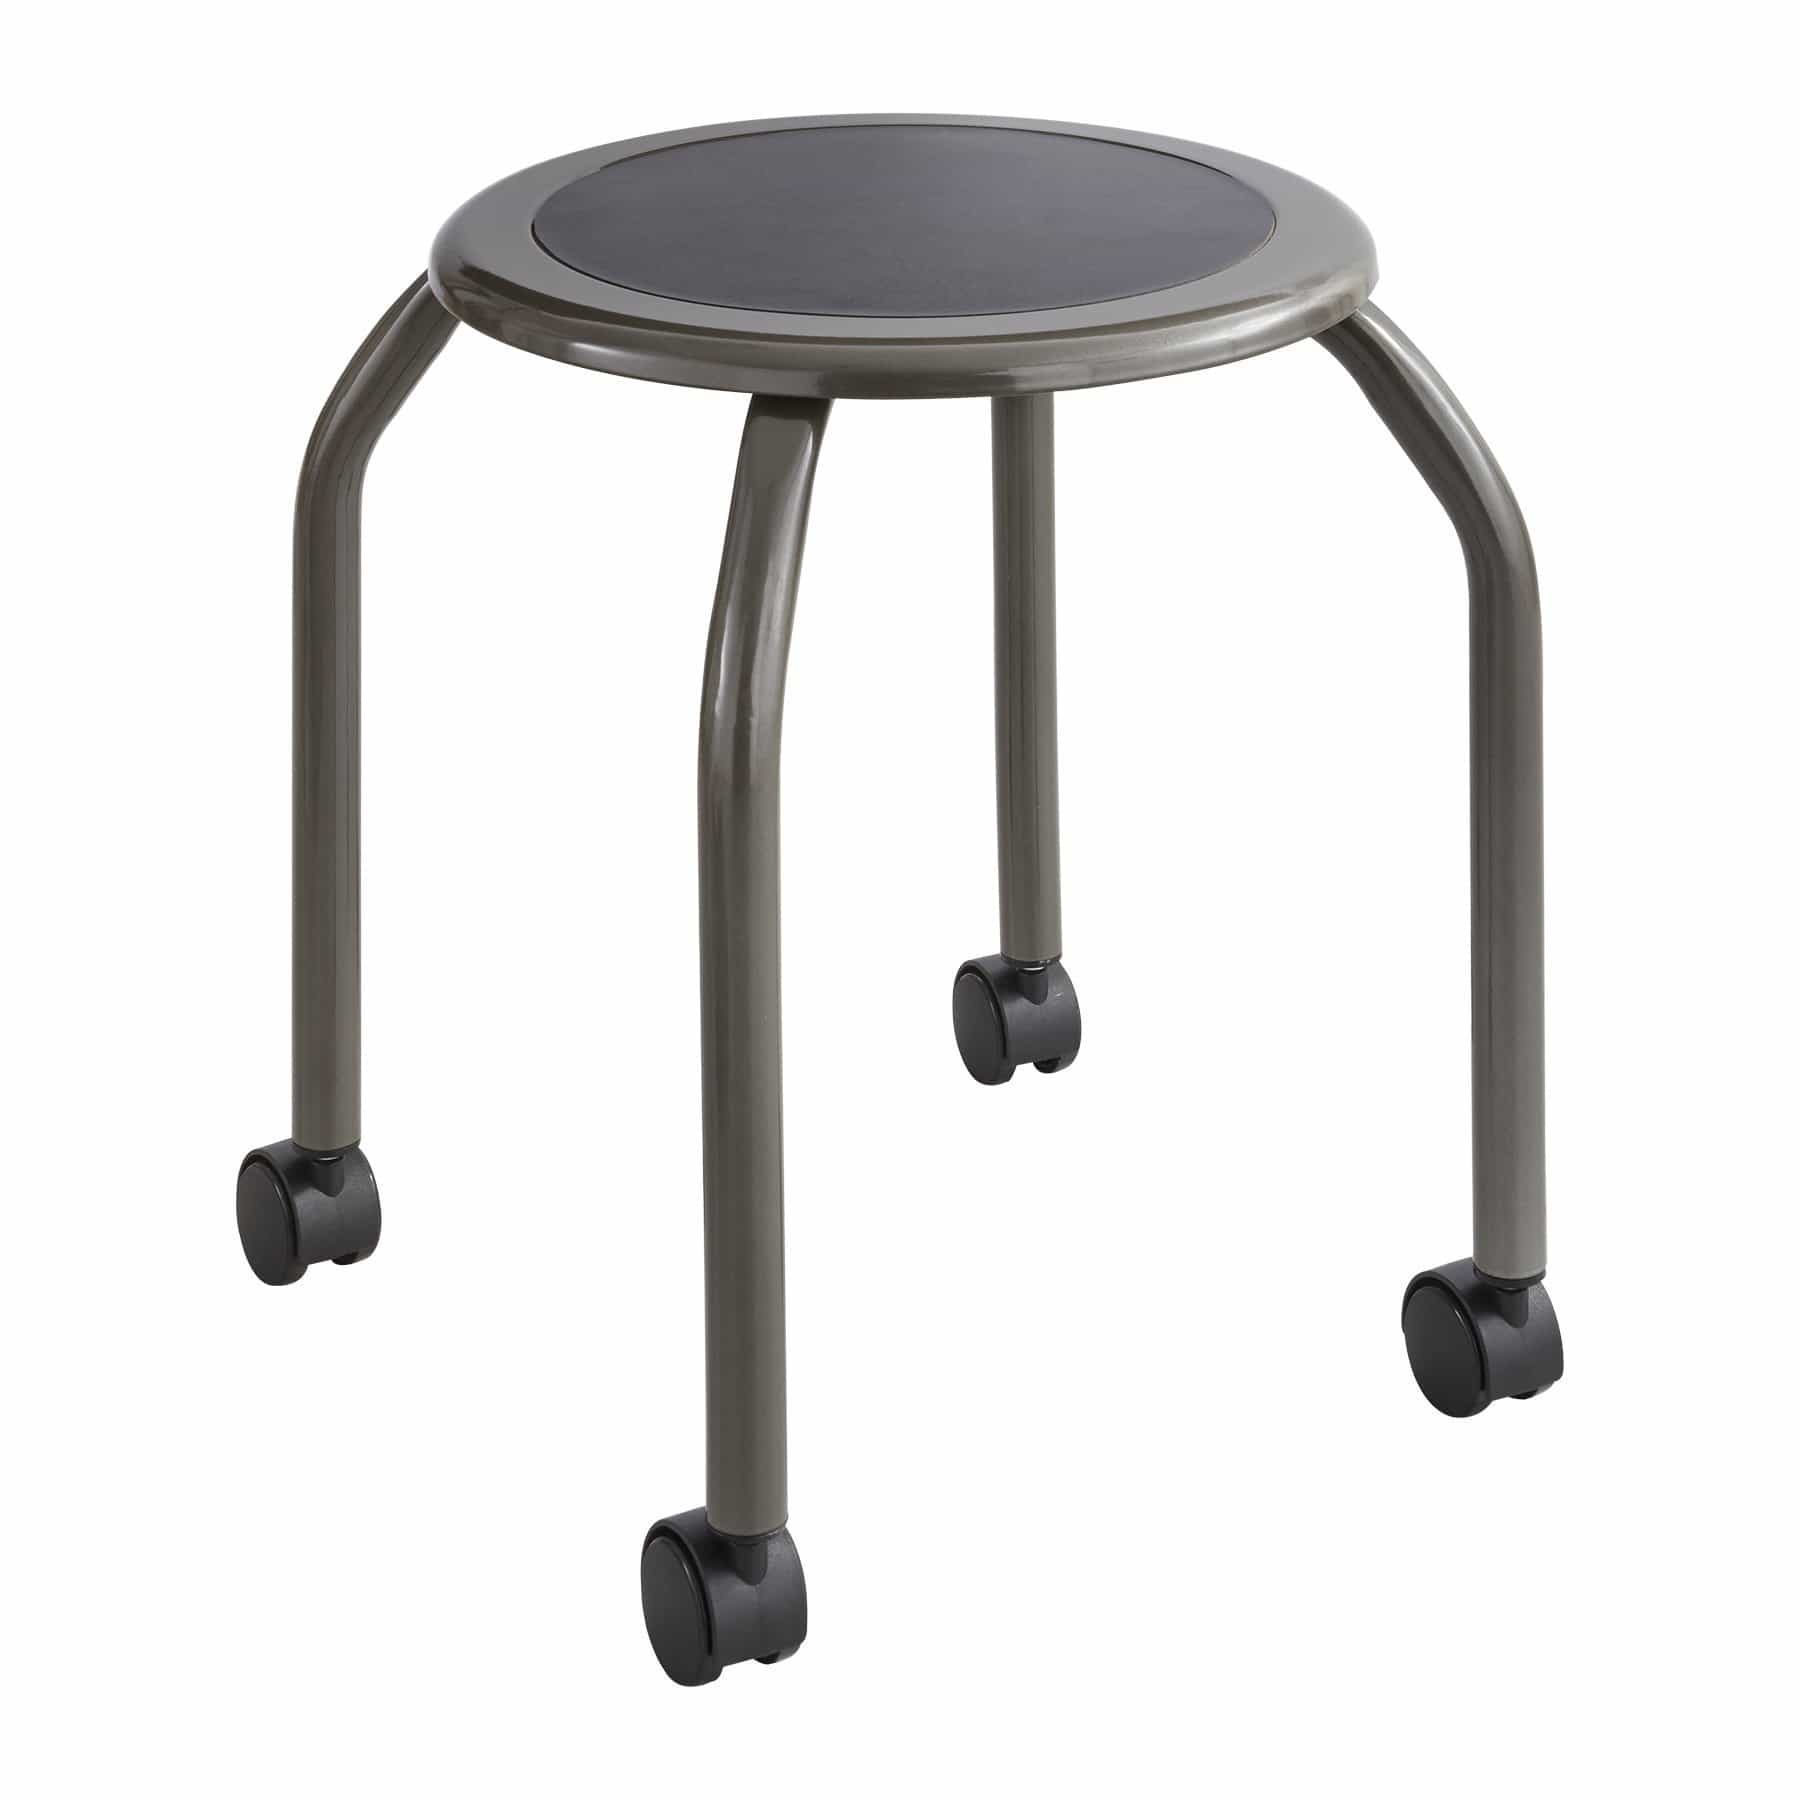 bedinhome - Industrial Back Room Seating Trolley Design Diesel Stool With Steel Frame - Safco - Diesel Stool